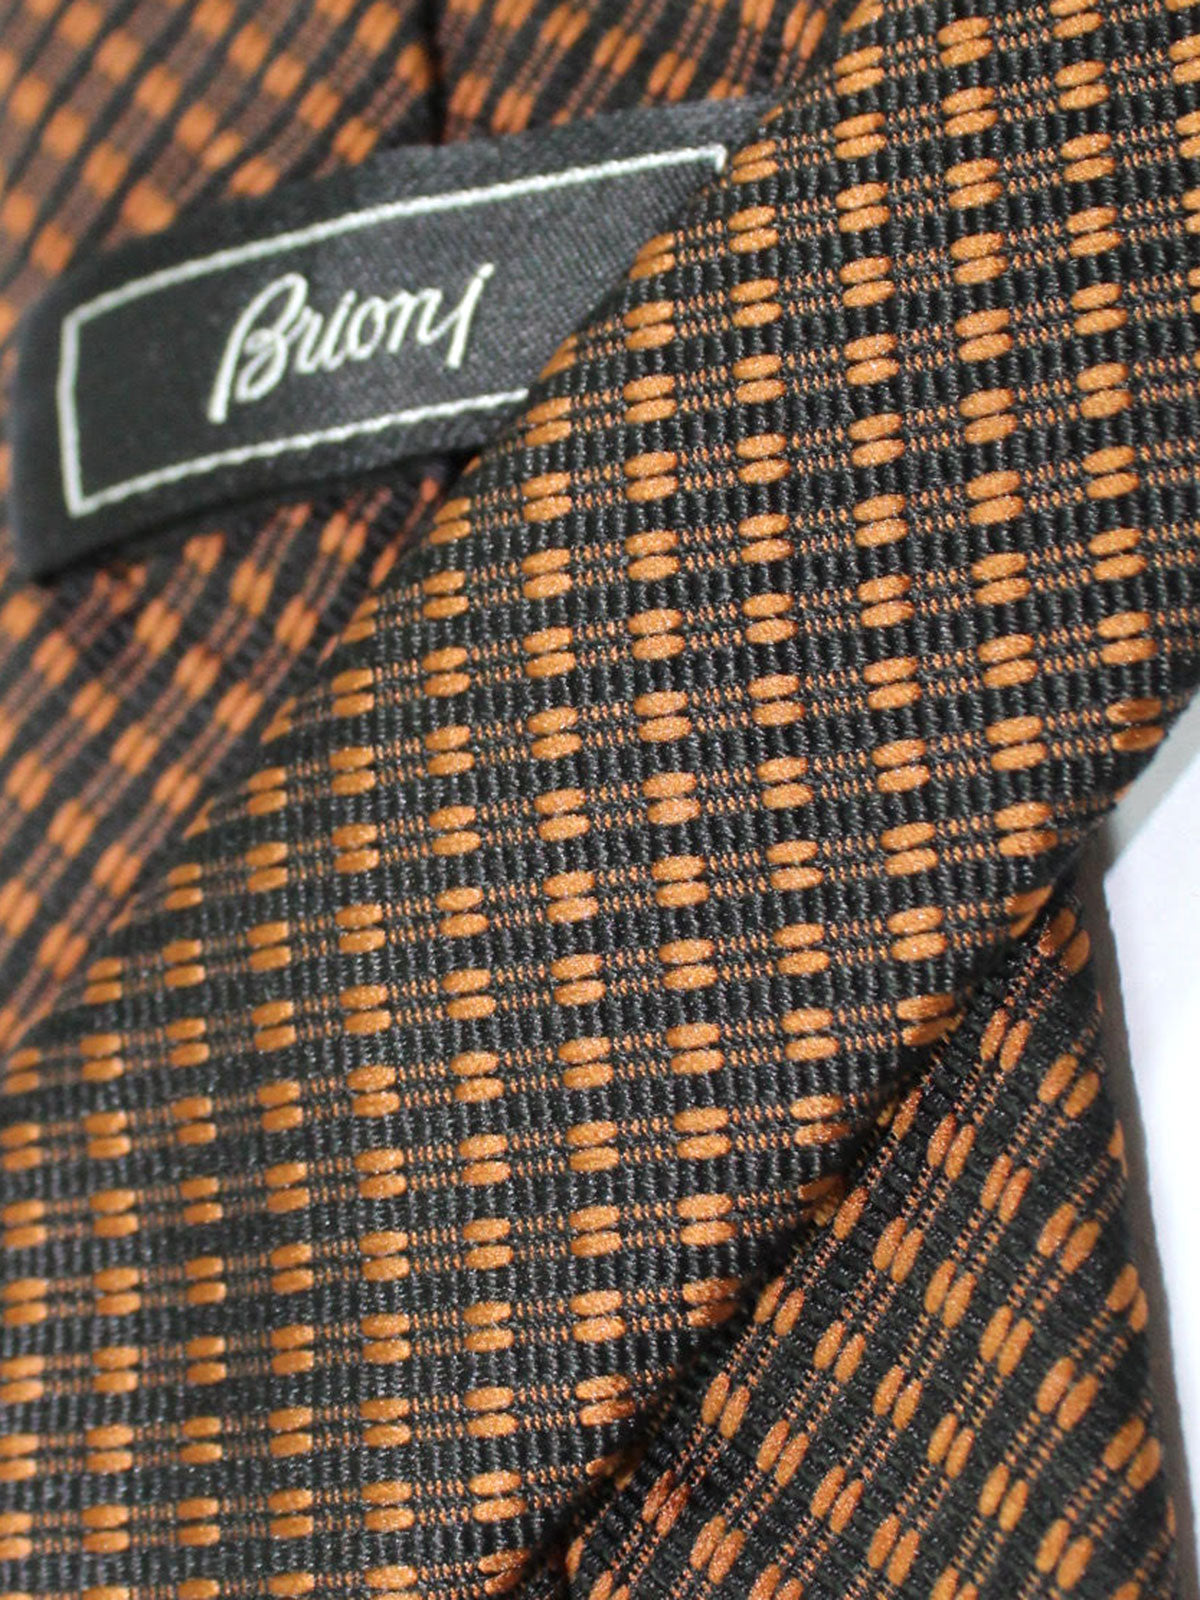 Brioni Silk Tie Brown Black Stripes